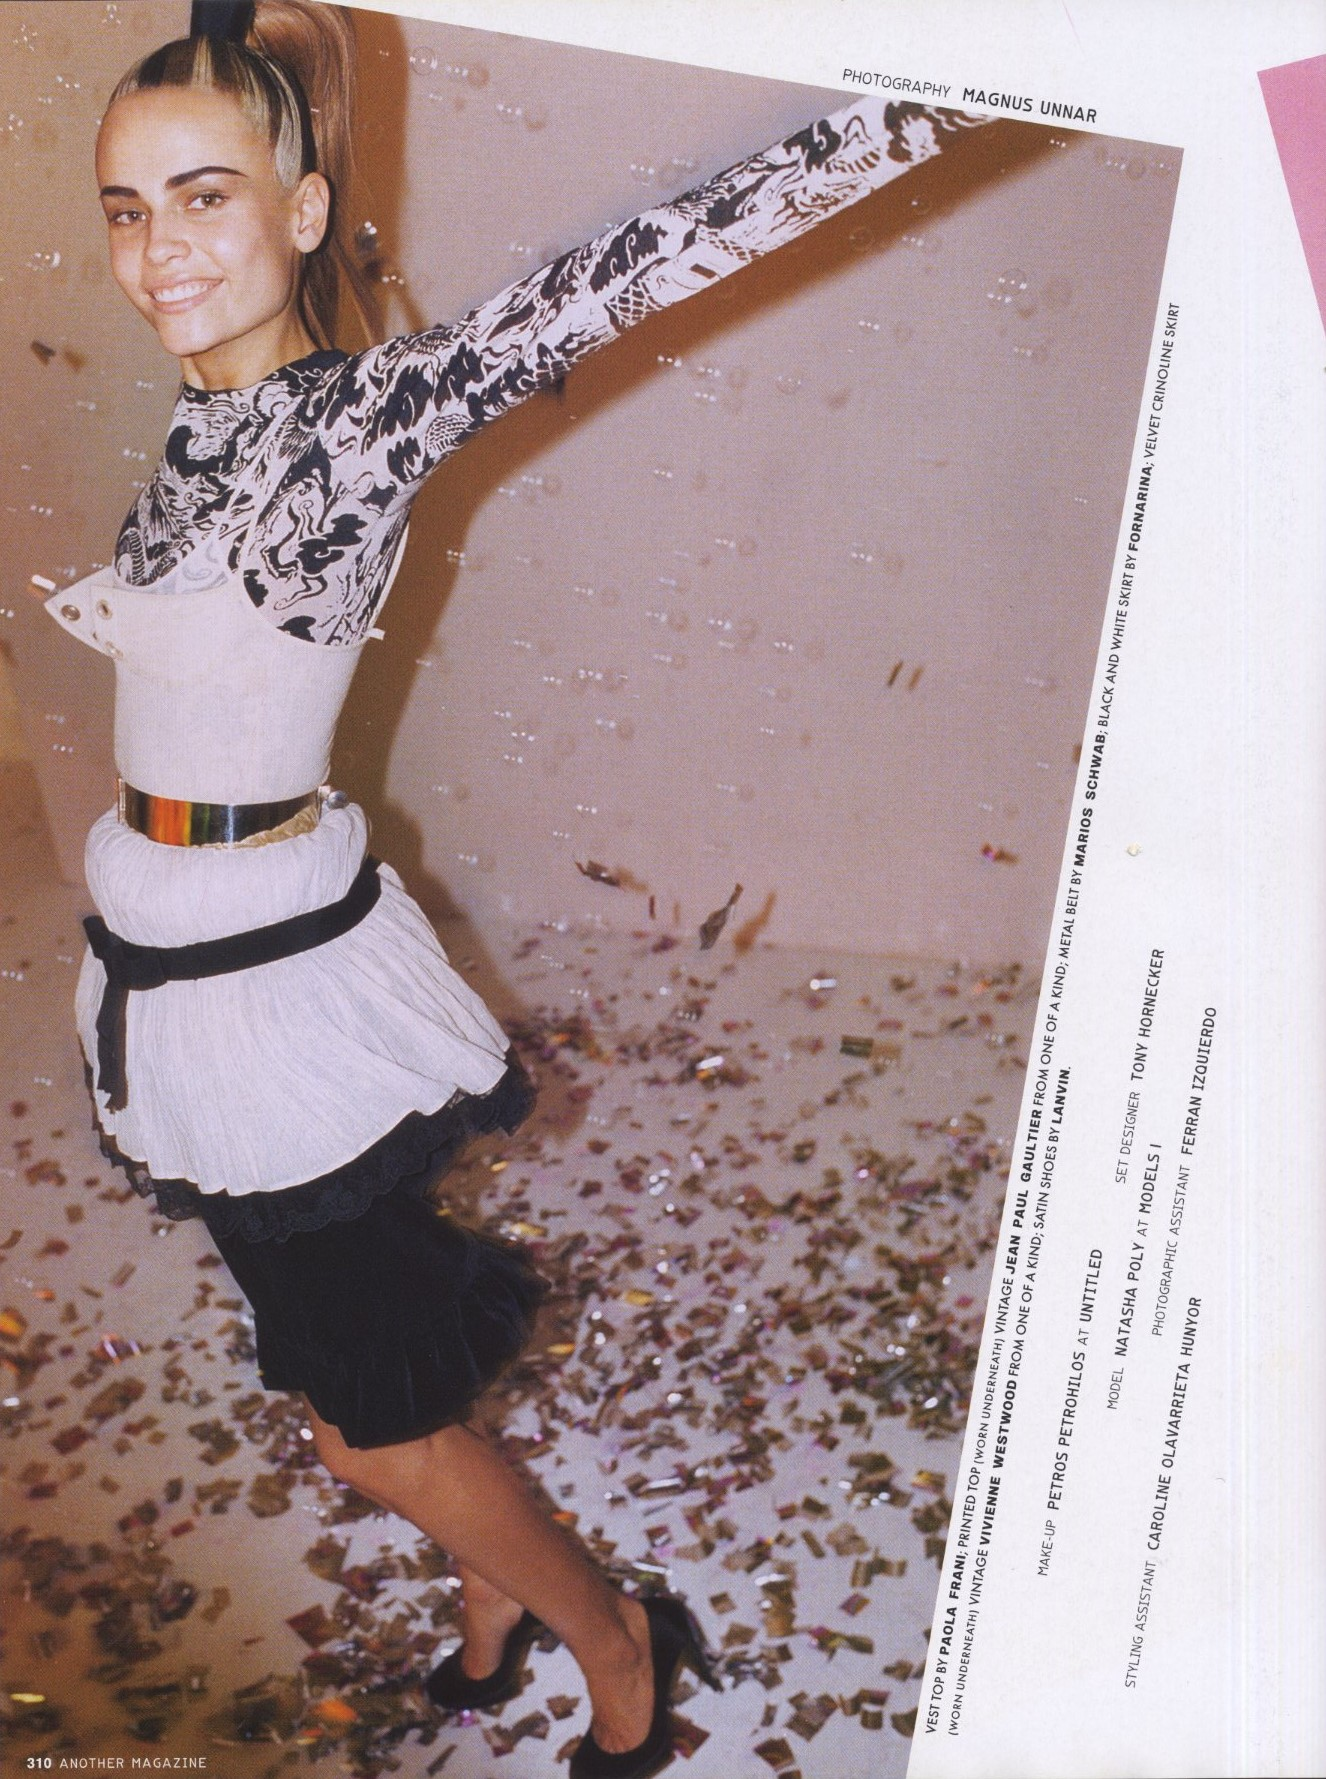 NATASHA POLY   PHOTOGRAPHY MAGNUS UNNAR   STYLING TAL BRENER   ANOTHER MAGAZINE  ISSUE 10   SPRING/SUMMER 2006